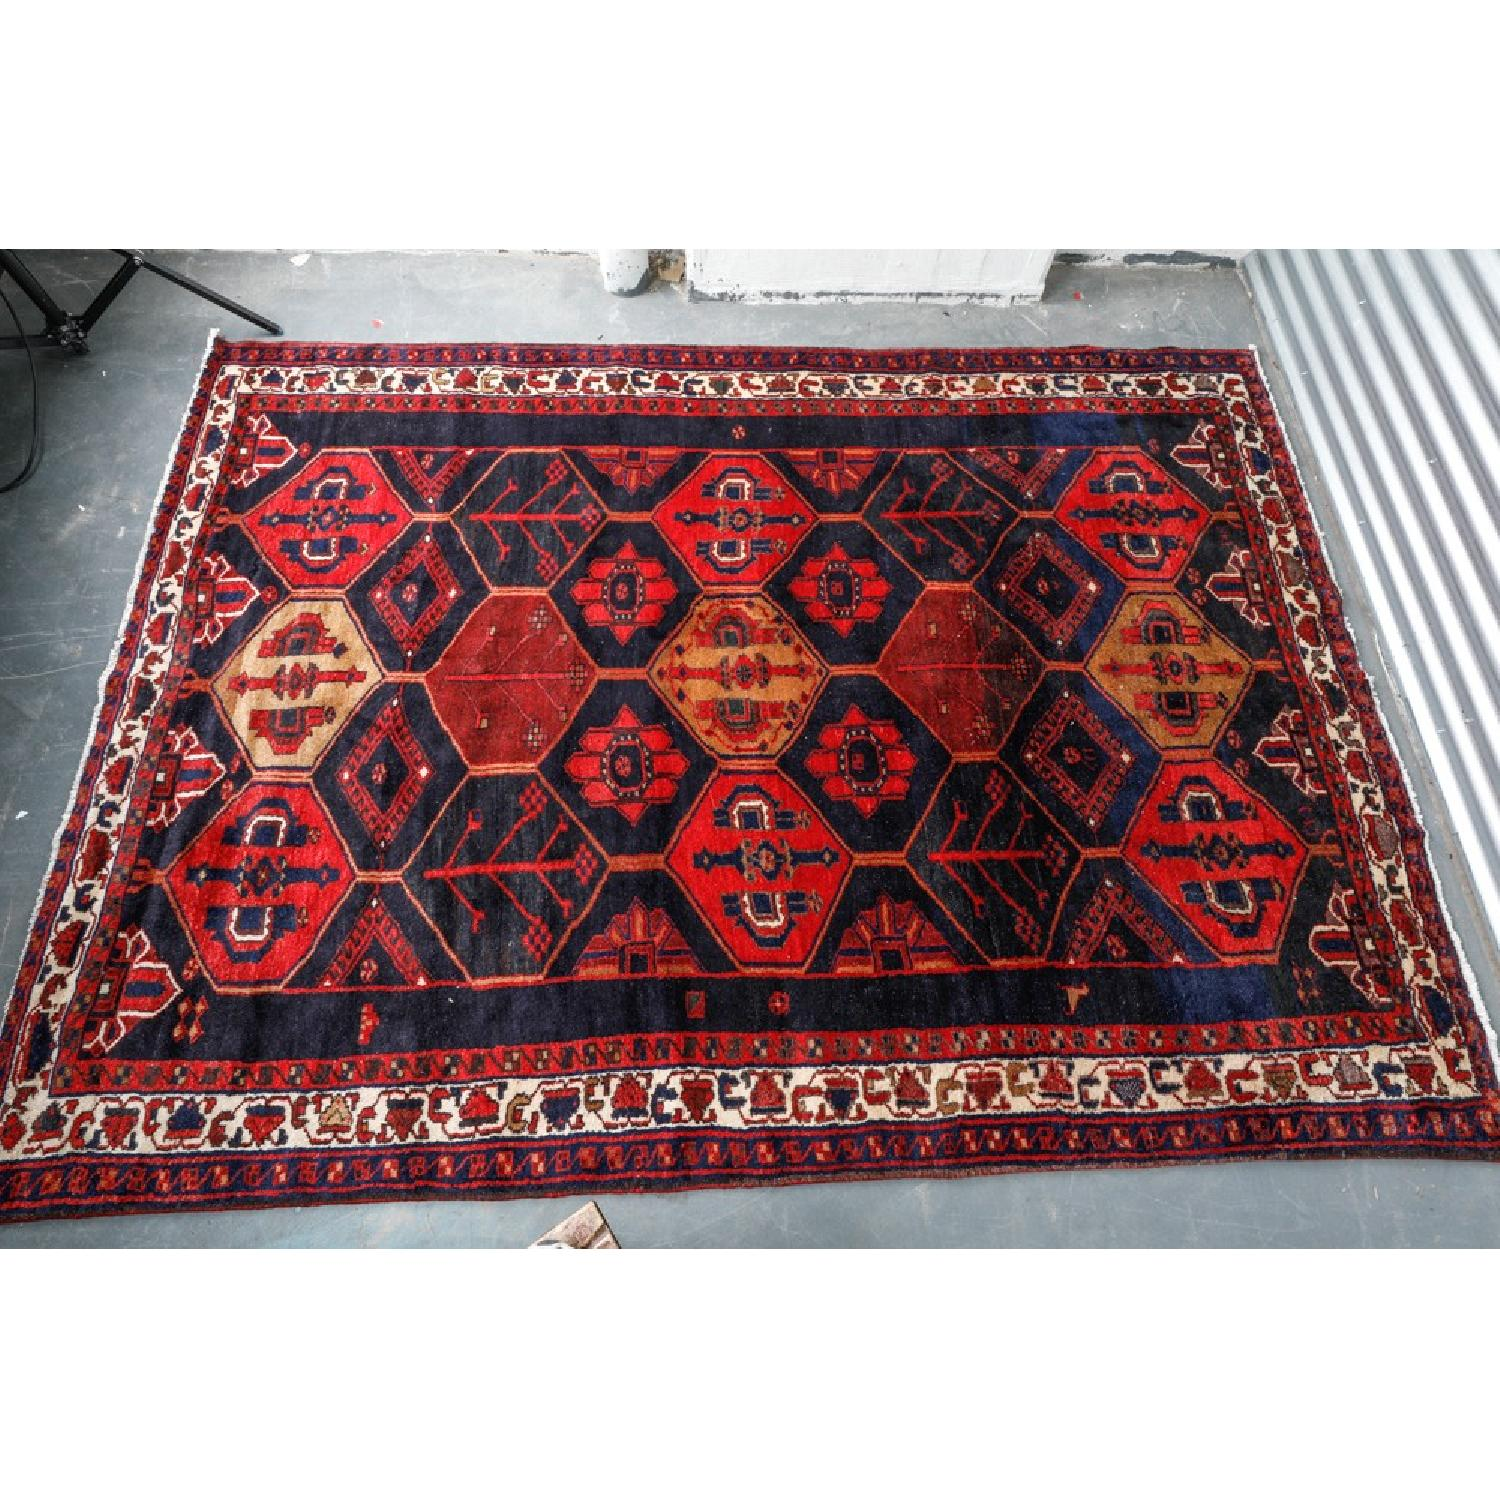 ABC Carpet and Home Patterned Area Rug-1